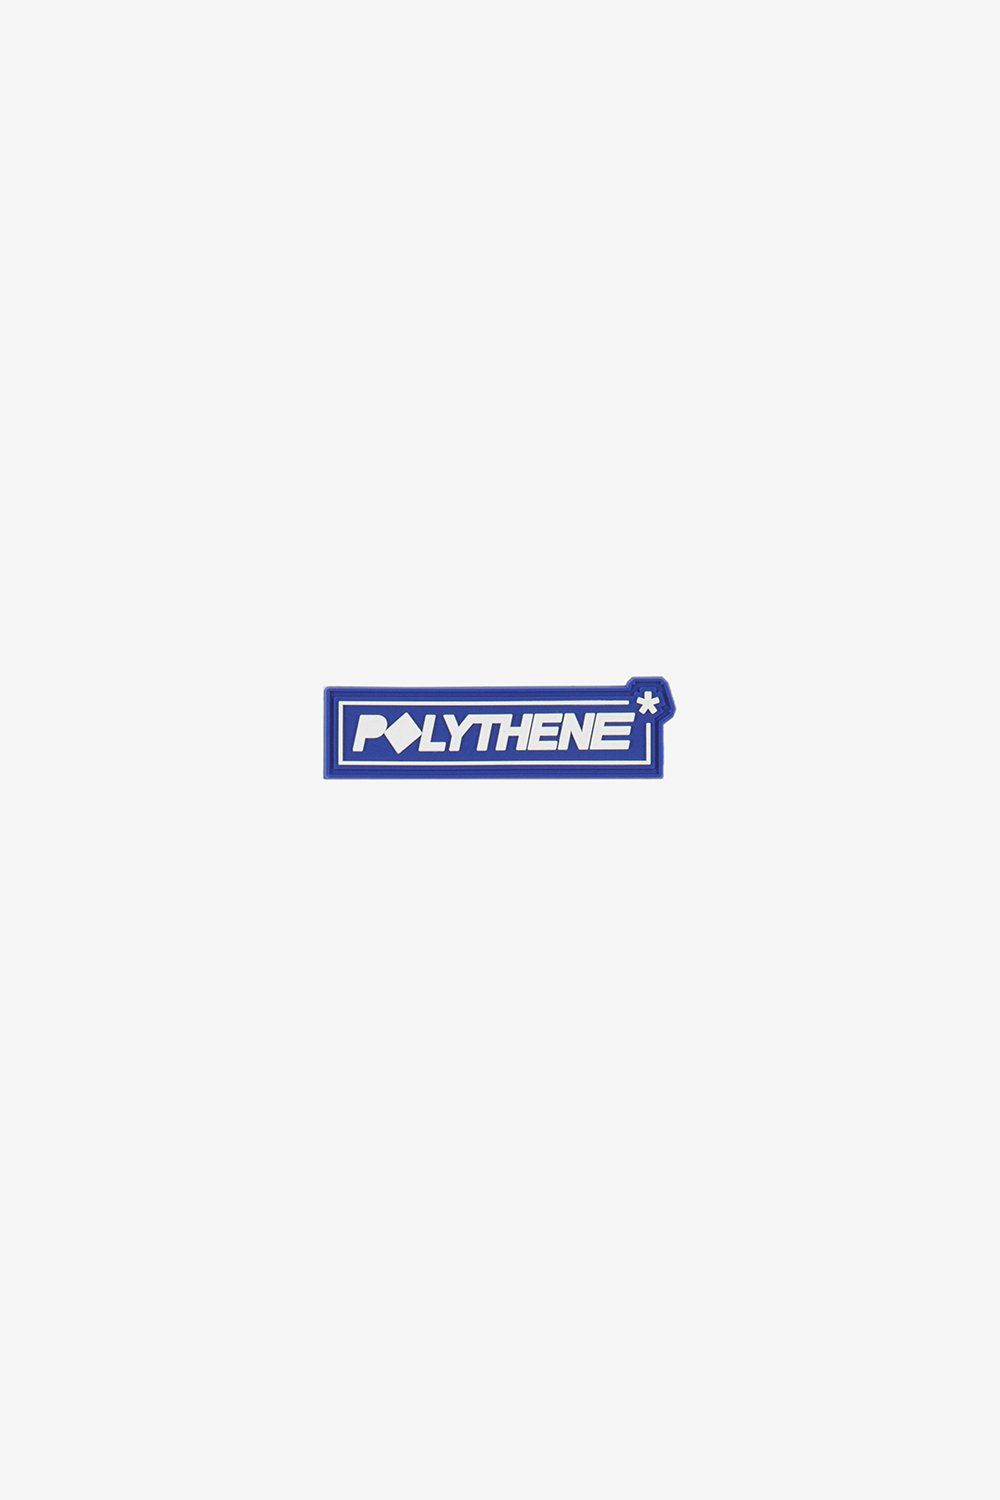 Polythene Optics OS Rubber Badge White/Blue